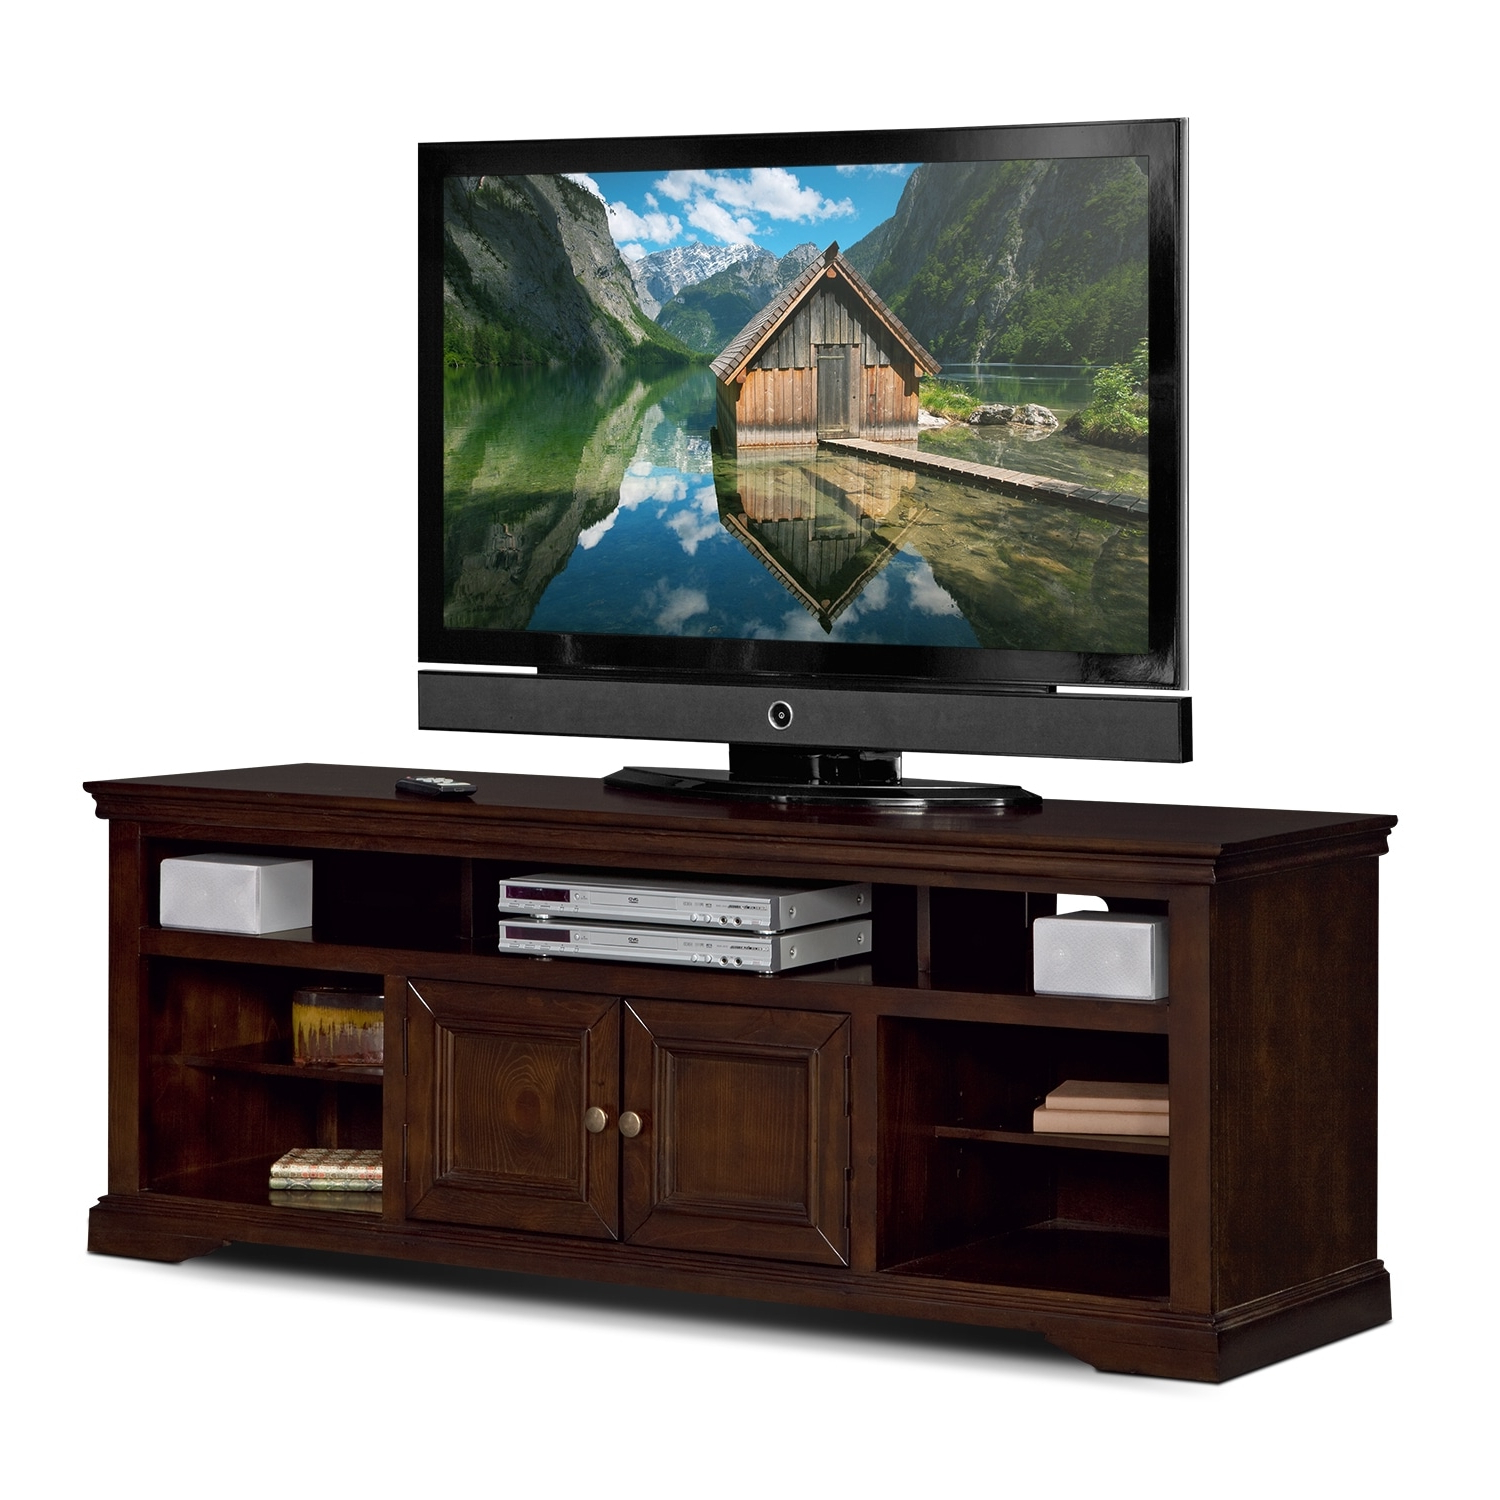 Value City Furniture And Mattresses Throughout Famous Cherry Wood Tv Stands (Gallery 8 of 20)